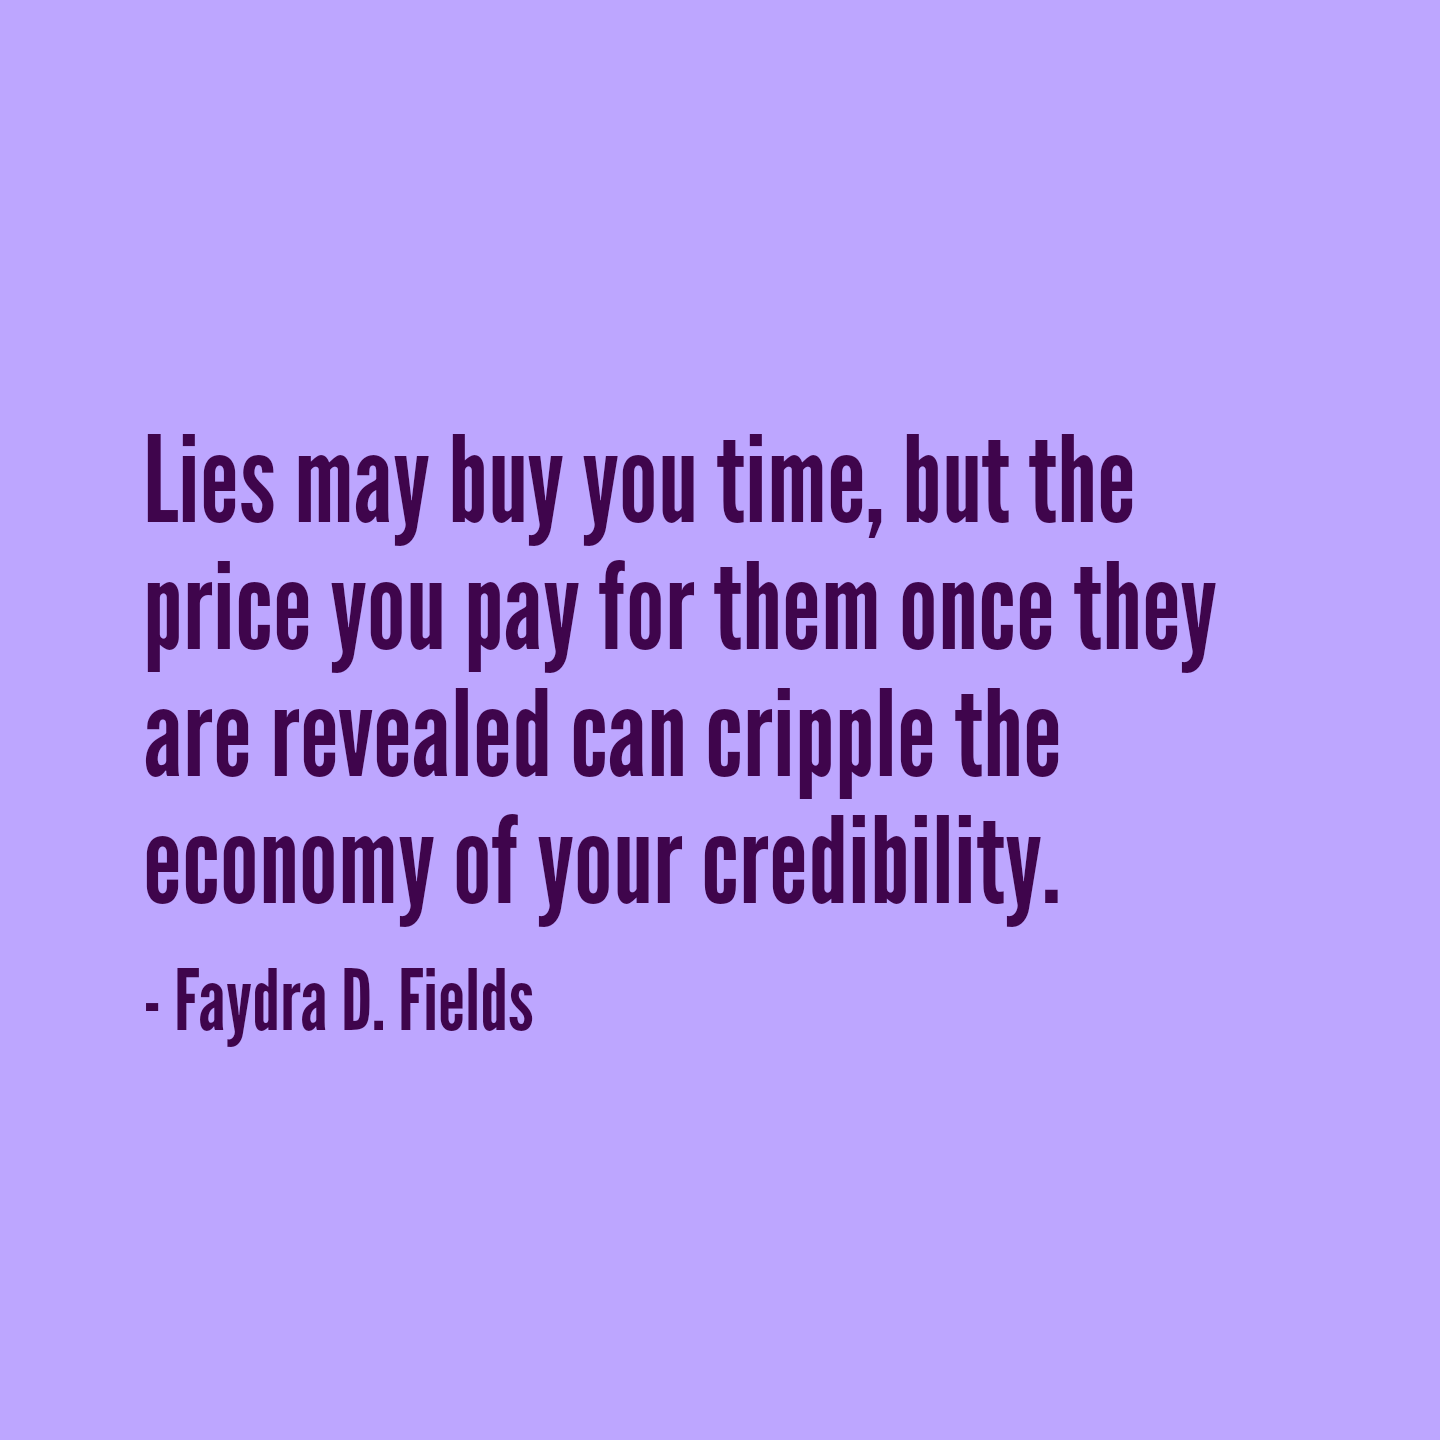 Maximum Axioms For Mental Acuity: Lies May Buy You Time, But The Price You Pay For Them Once They Are Revealed Can Cripple The Economy Of Your Credibility. - Faydra D. Fields